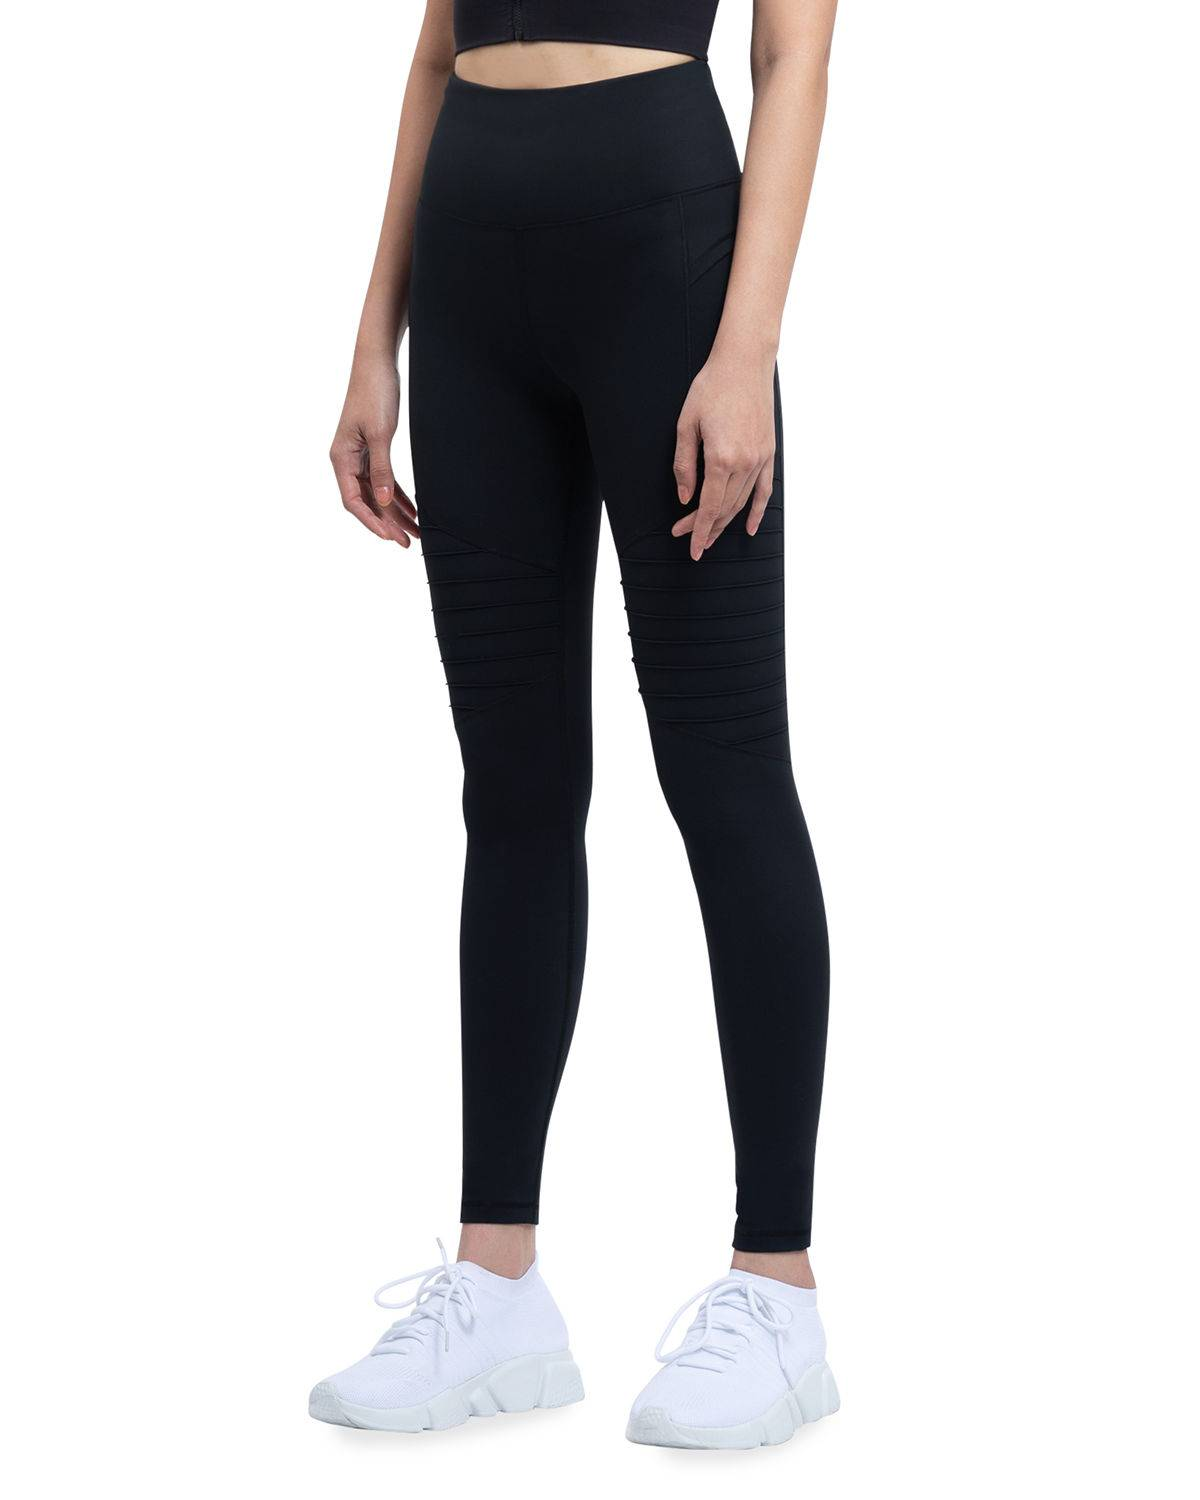 VOICE OF INSIDERS Phone Pocket 7/8 Moto Leggings - Size: Small